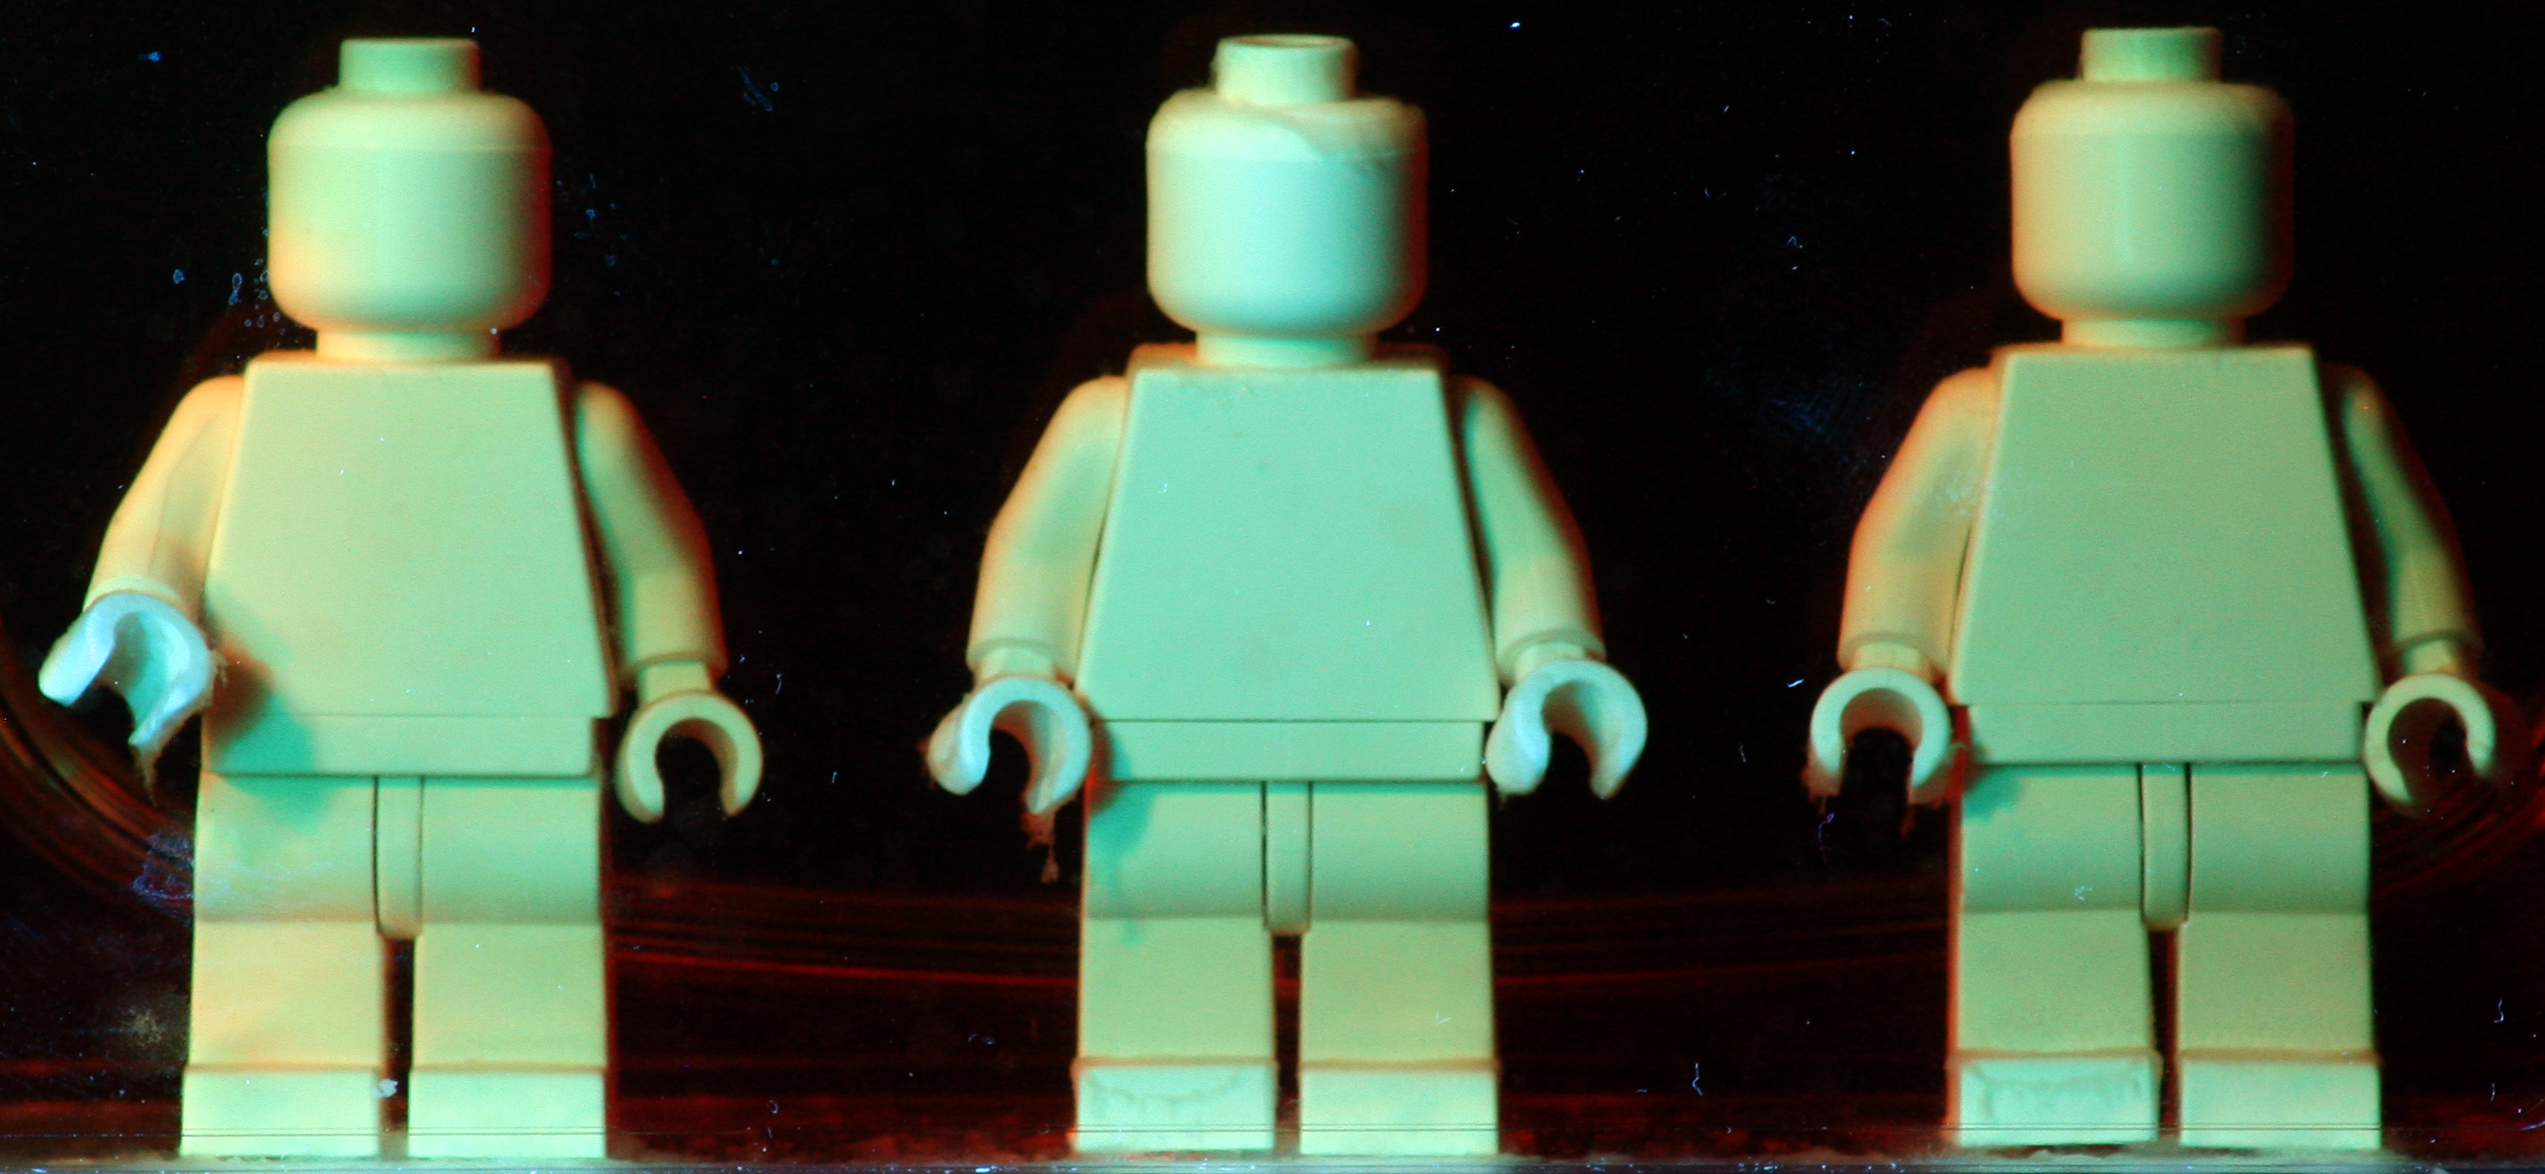 HeLa_On_MiniFigs - Image Credit Andrew Pelling